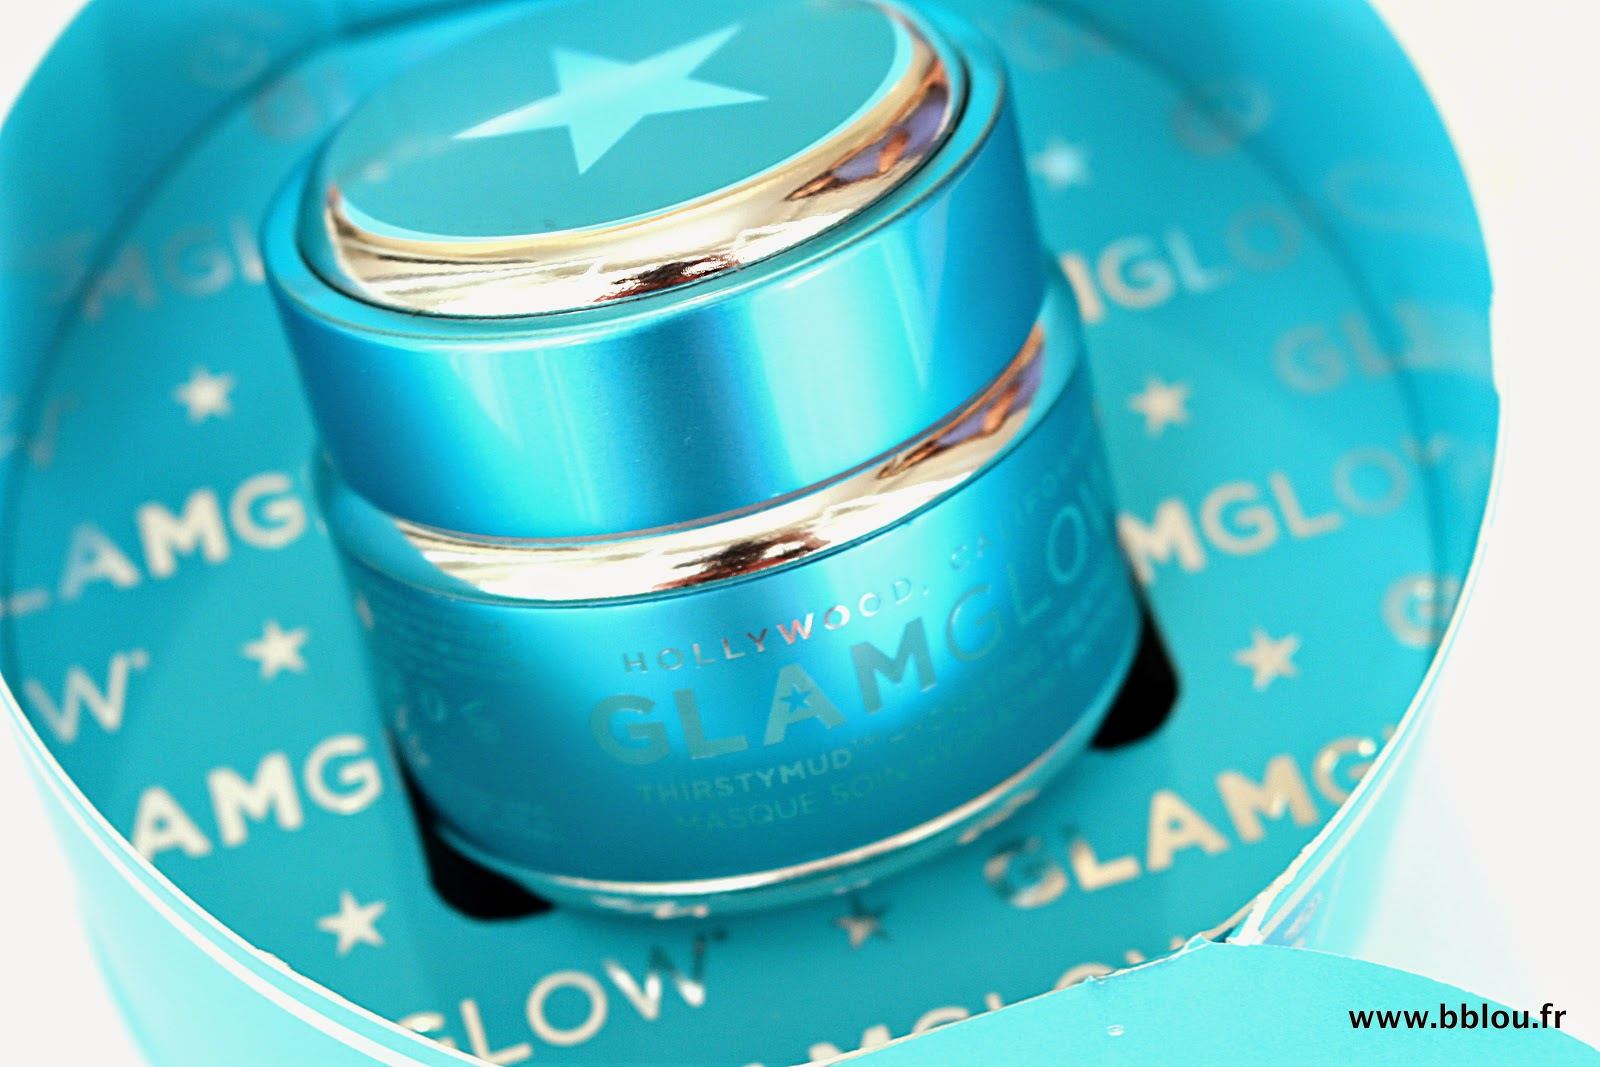 http://www.beautybylou.com/2014/08/glamglow-fait-son-entree-dans-ma-salle.html